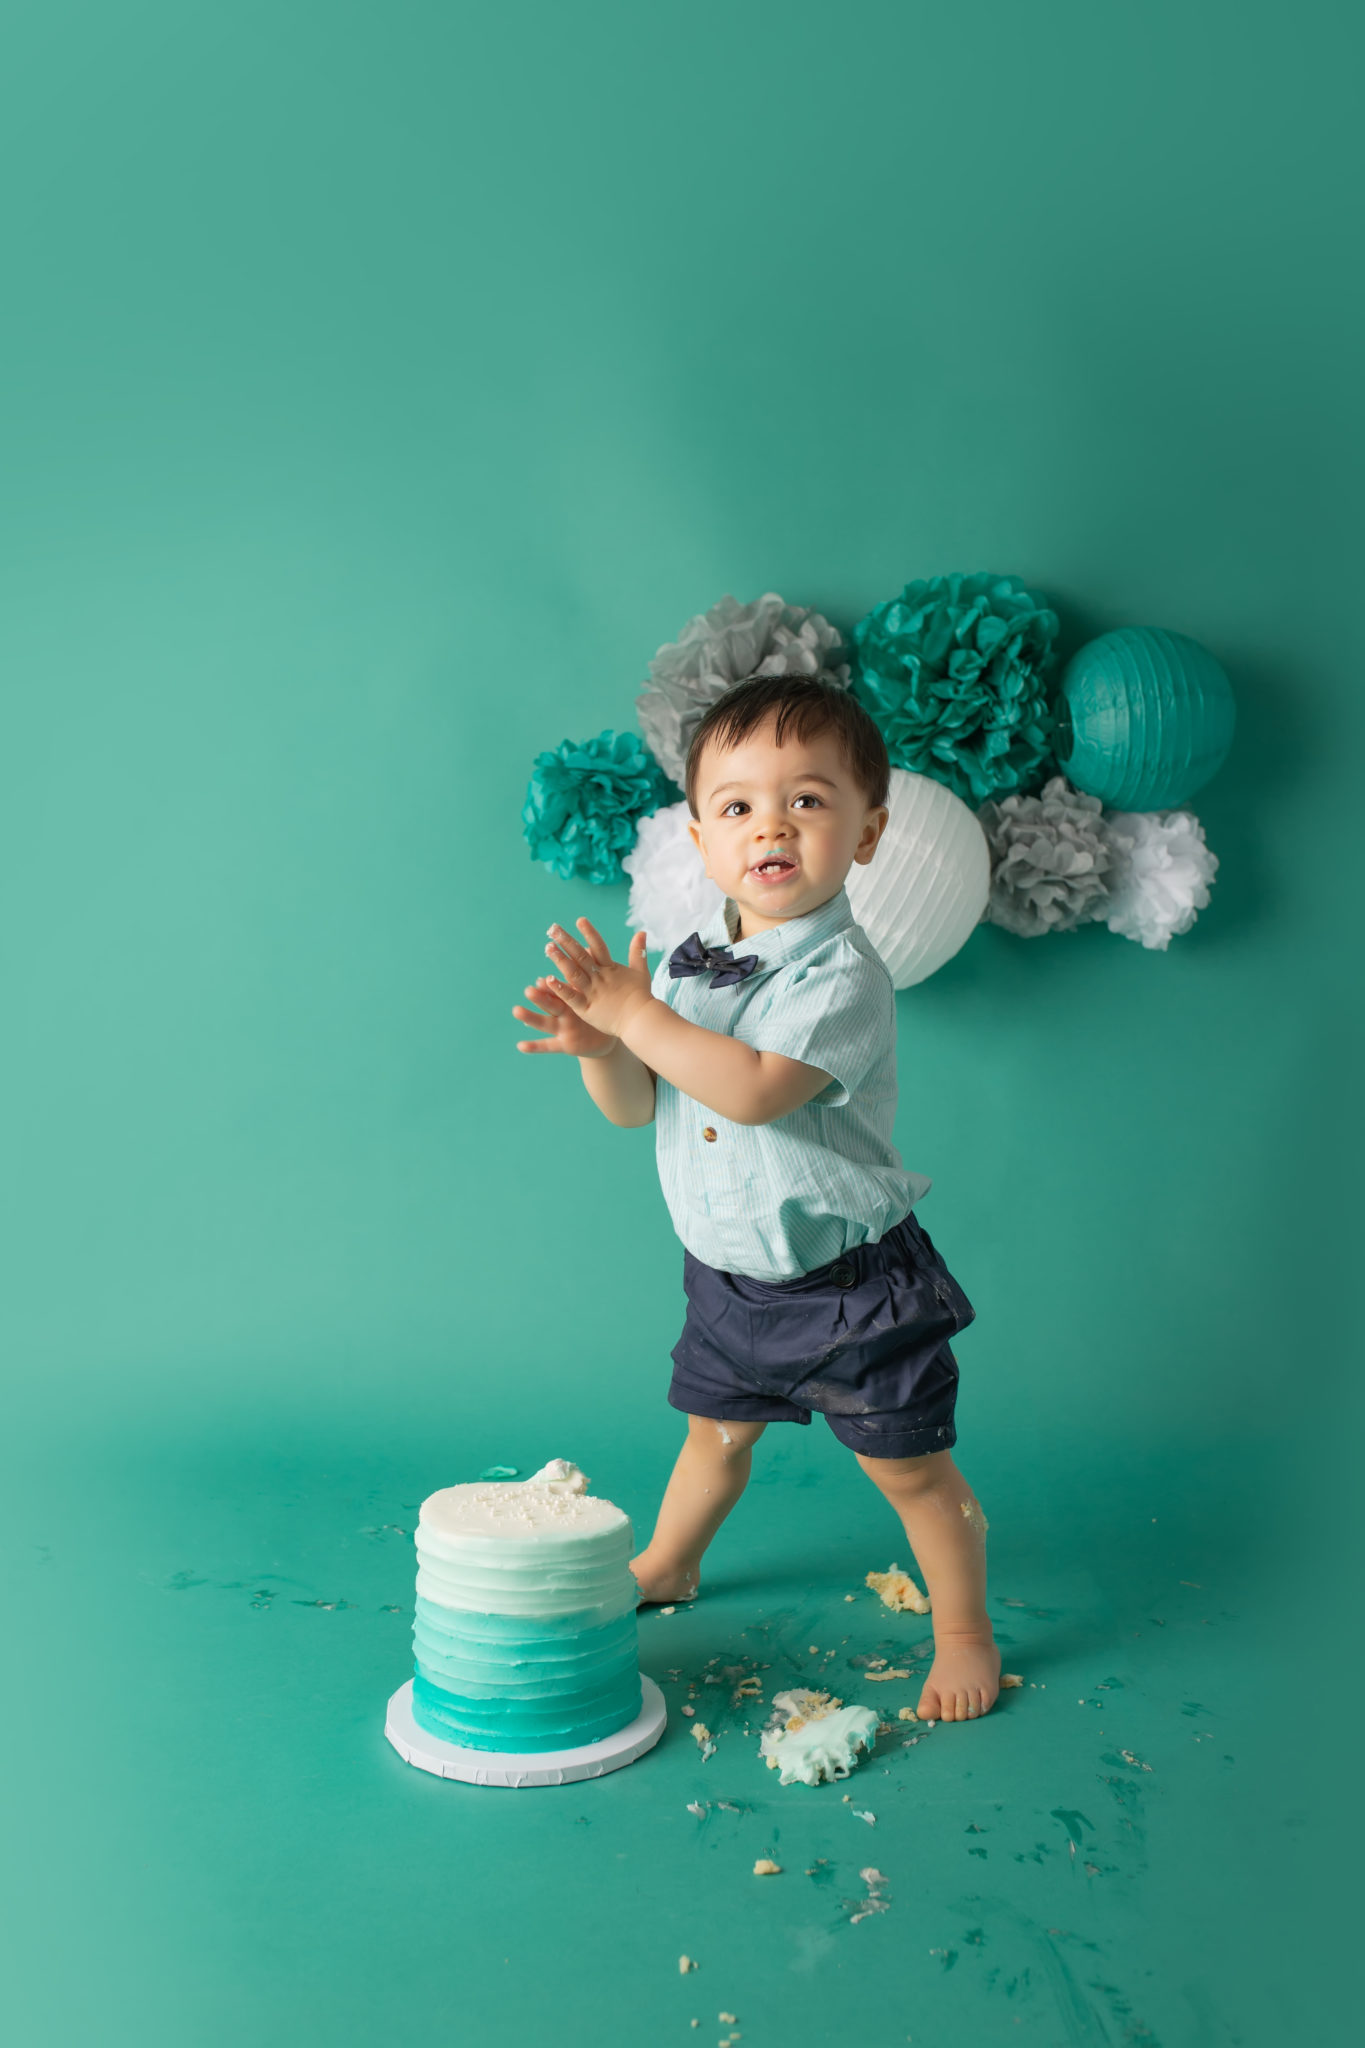 Dallas Baby Photographer first birthday cake smash in teal